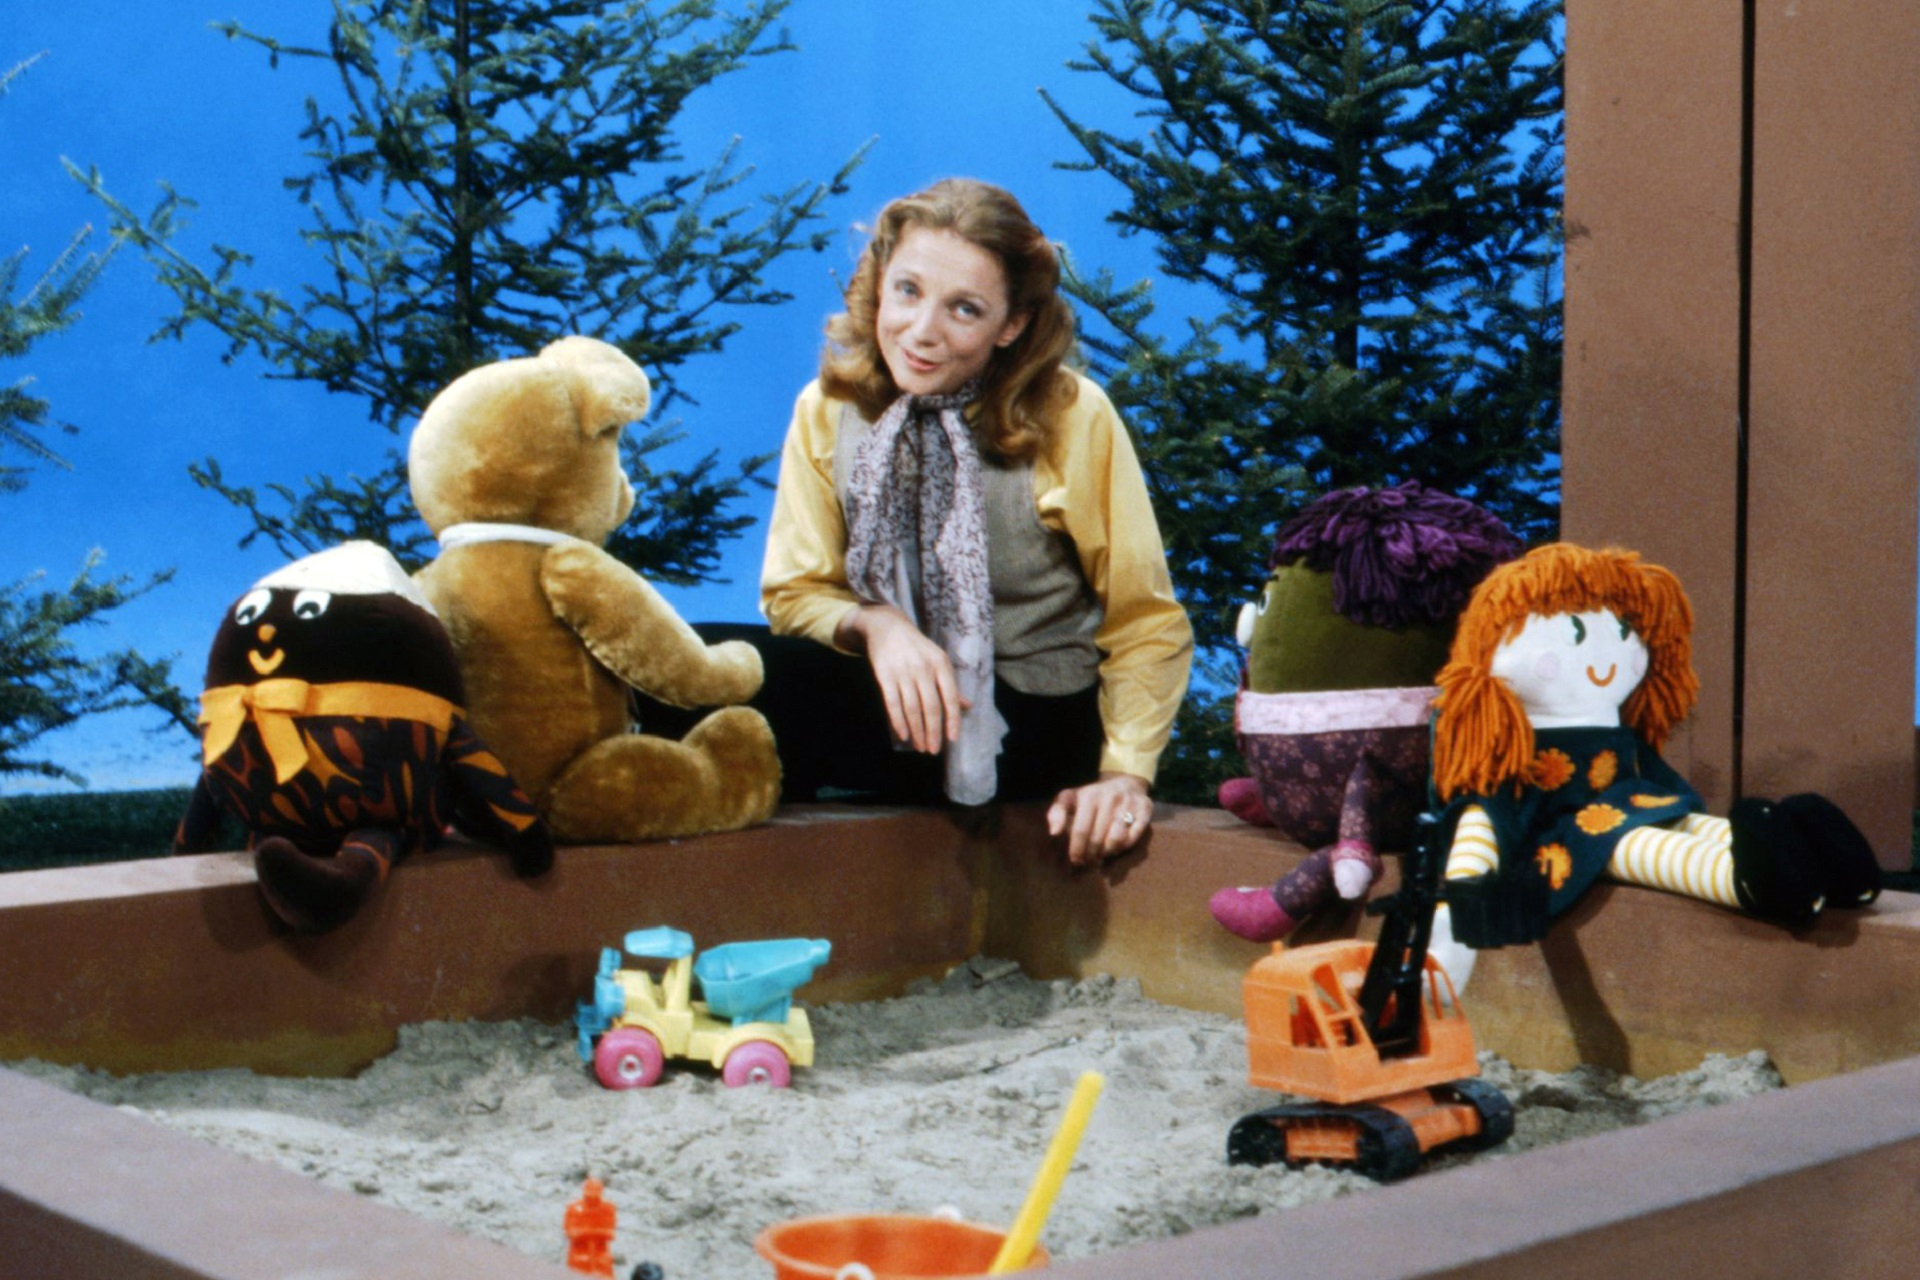 Time Warp! Can you name this iconic, Canadian children's show?